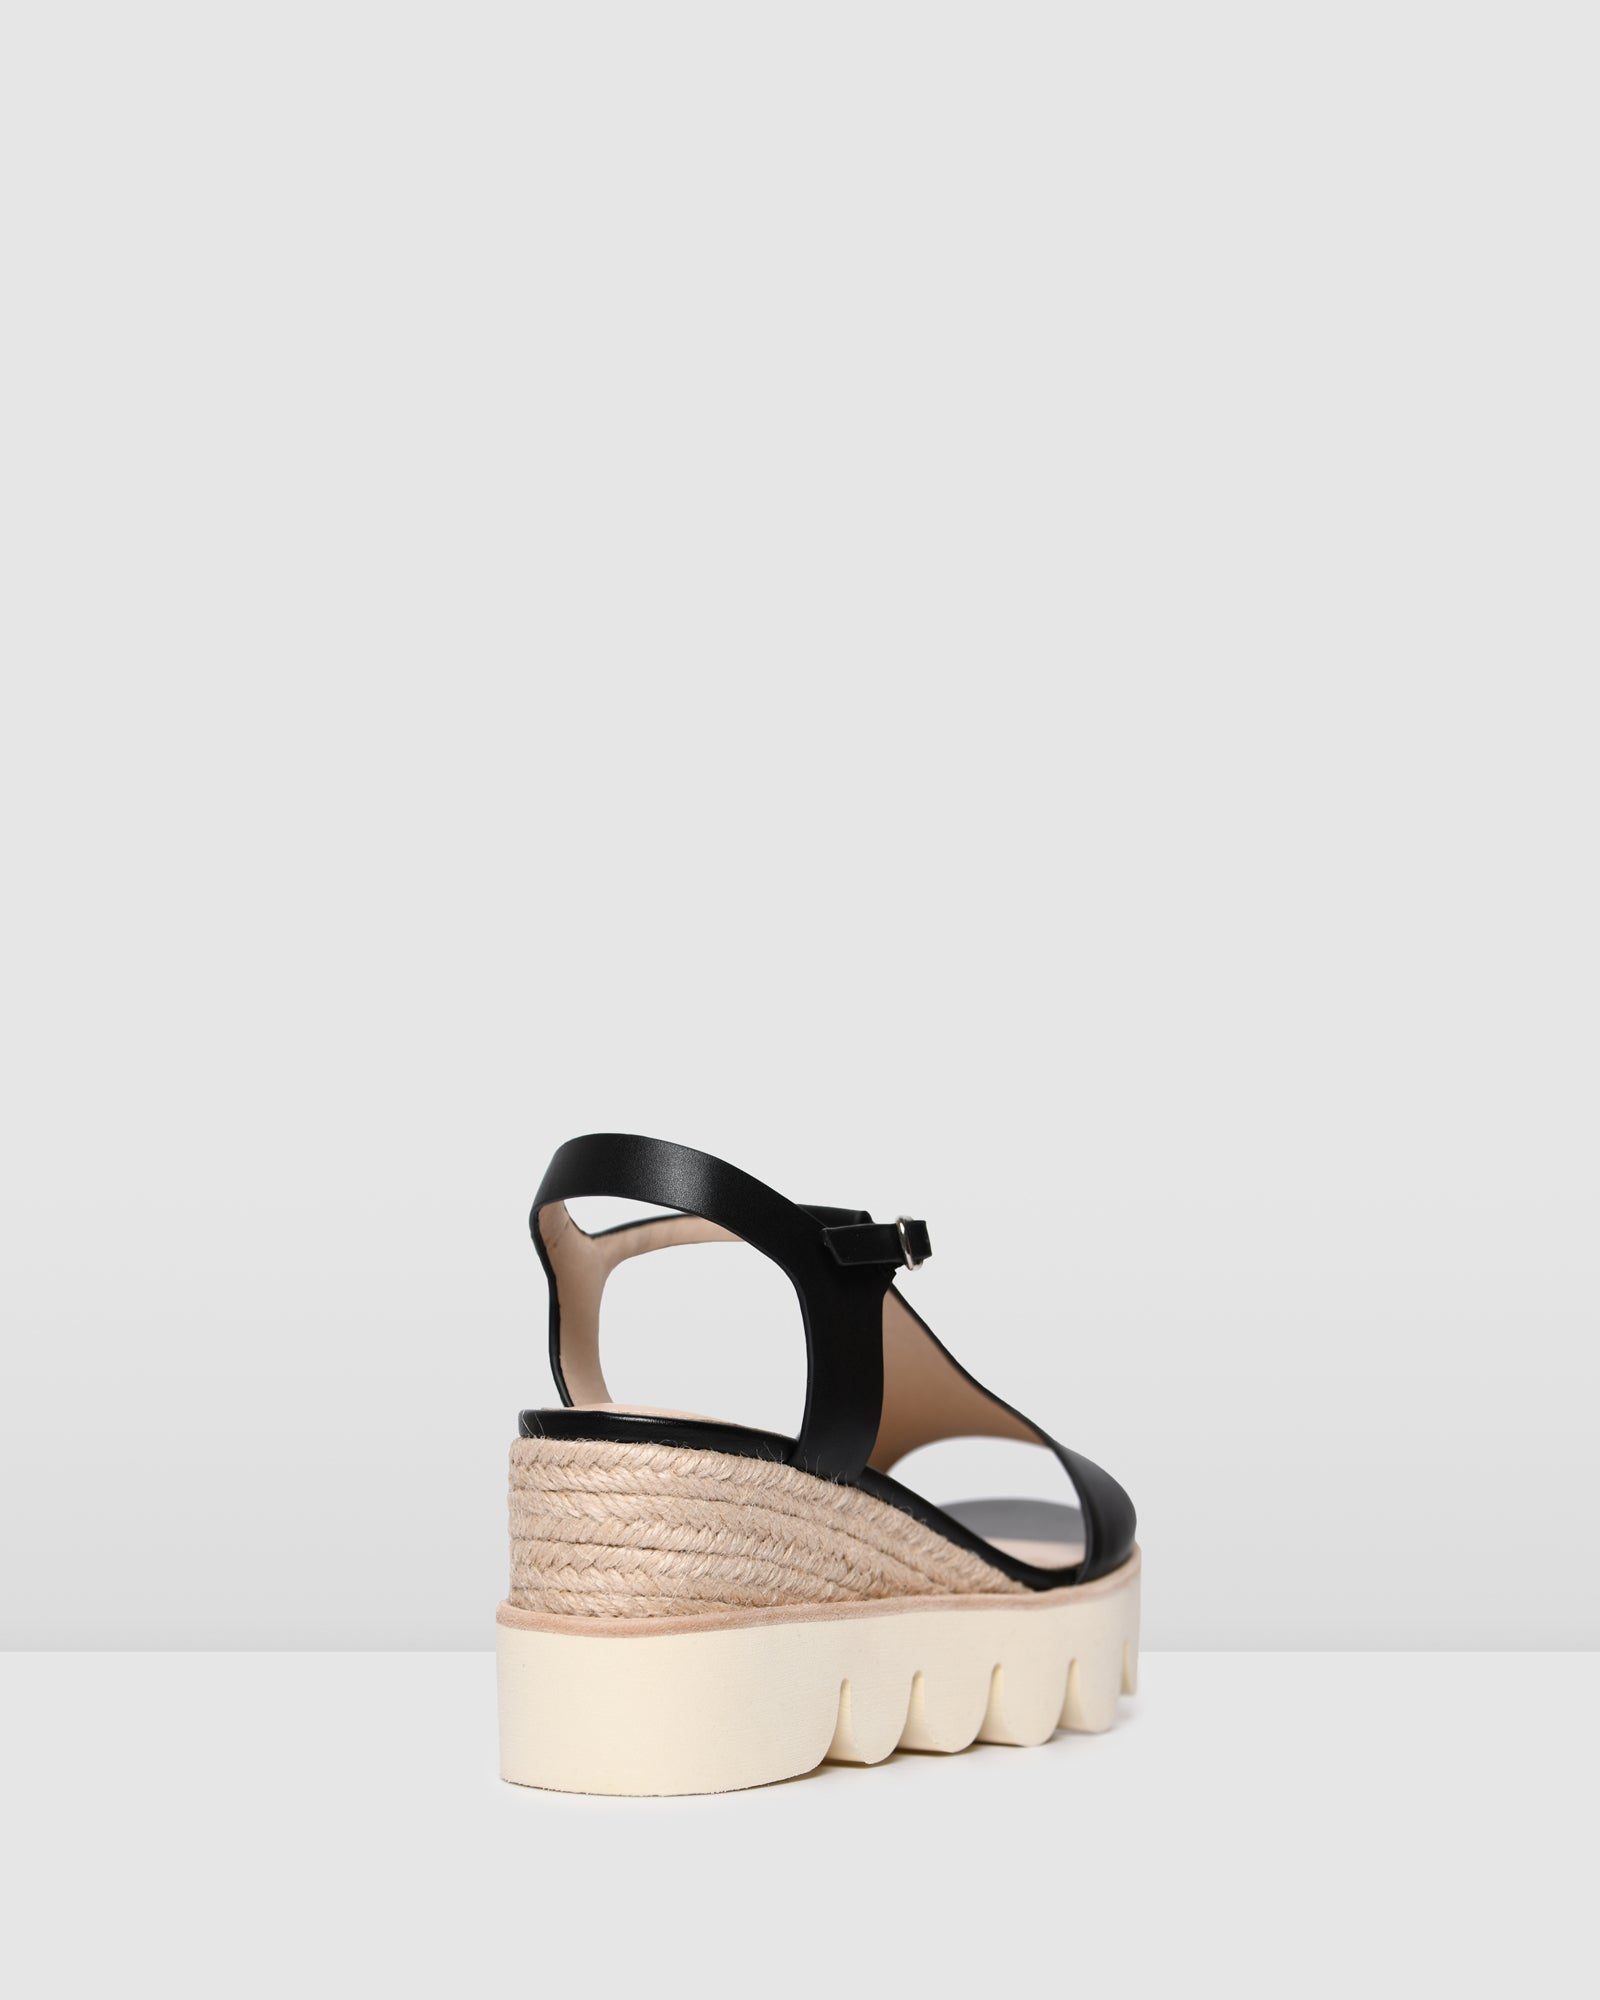 QUE HIGH HEEL WEDGE ESPADRILLES BLACK LEATHER